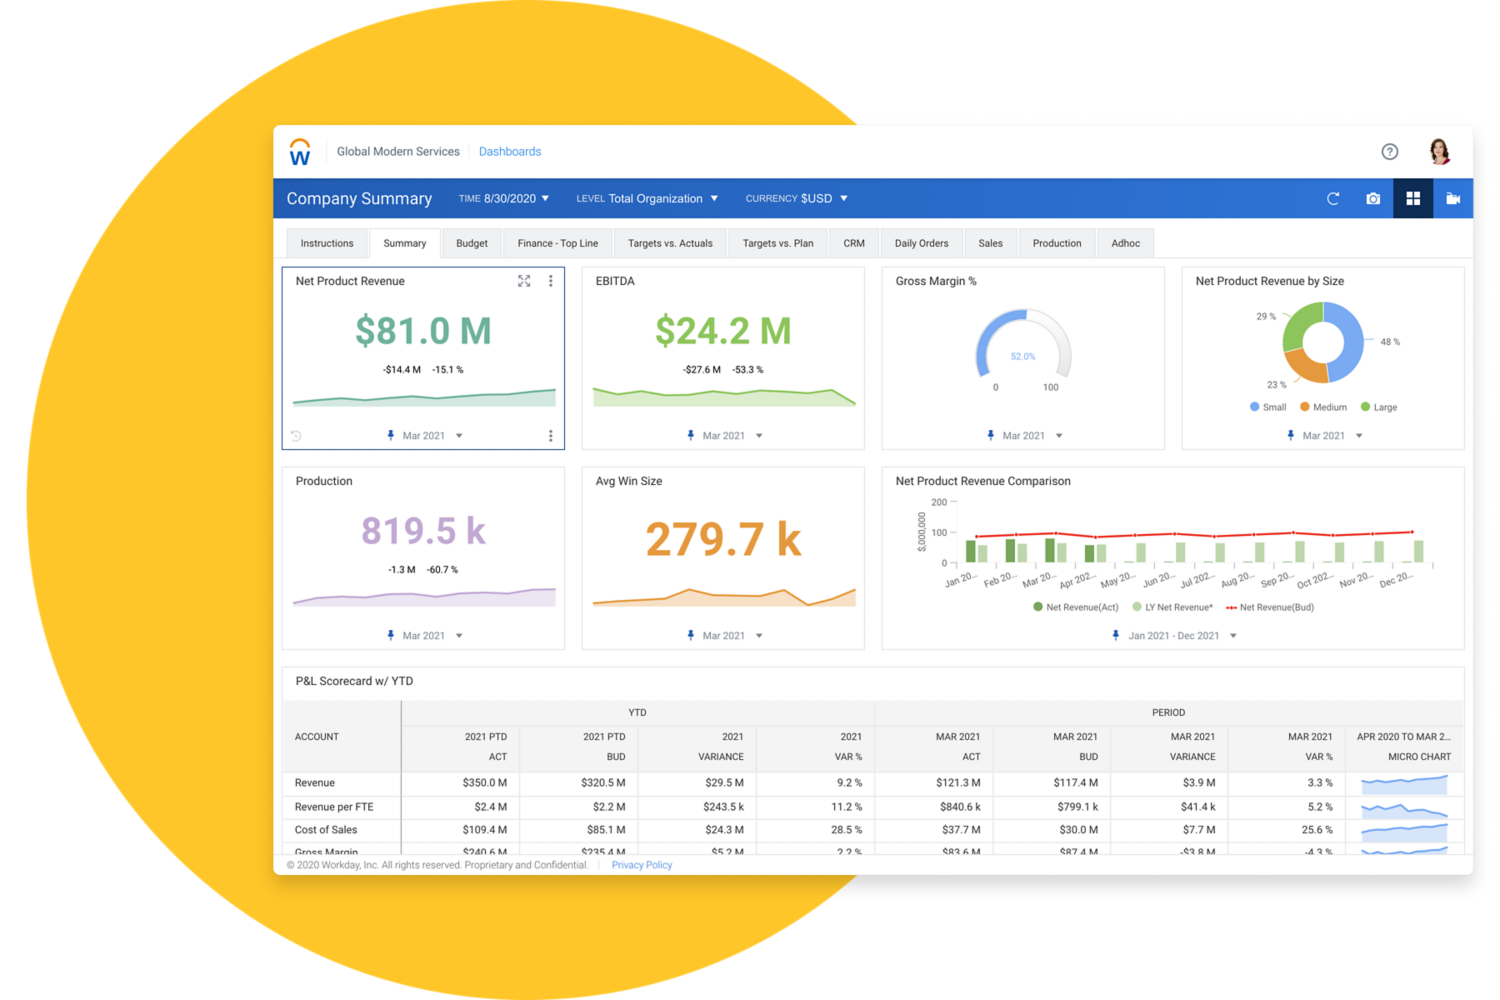 Workday Adaptive Planning's Top Lines dashboard showing bar graphs and numerical values for net revenue, EBITDA, and PP&L Scorecard.